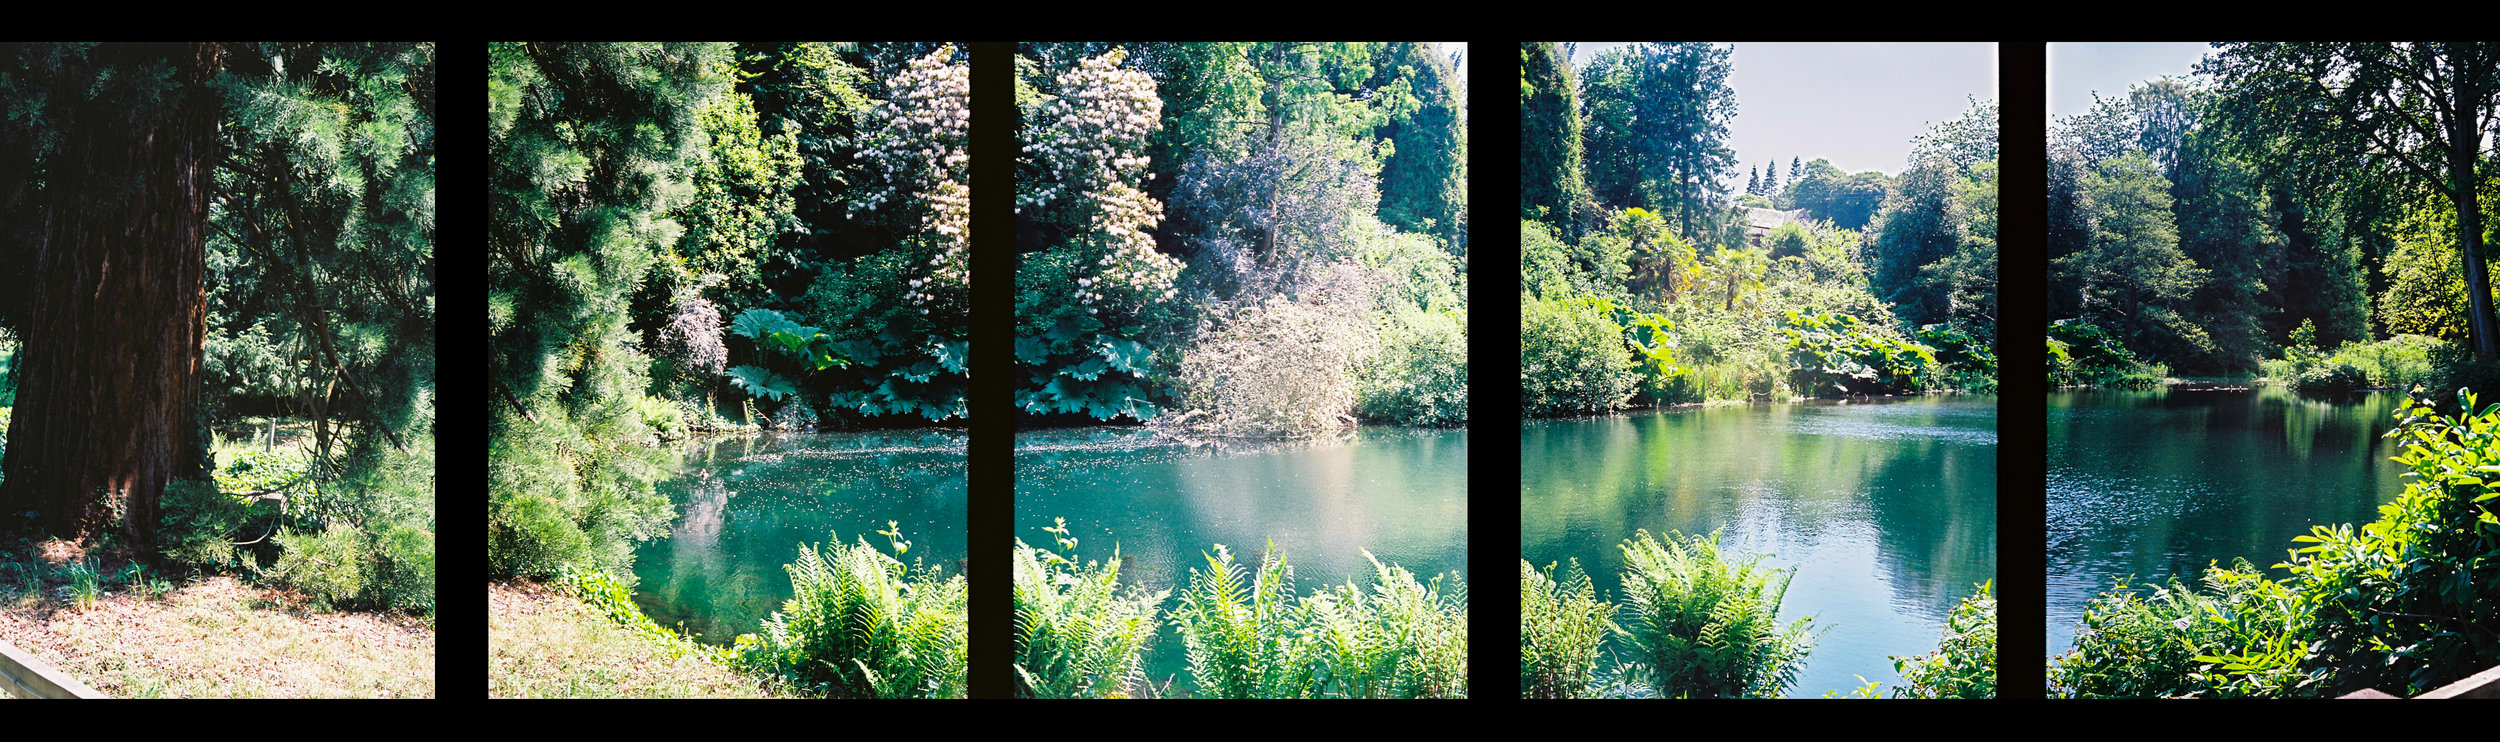 Berries Den Pond Panorama, shot on Olympus Pen D3